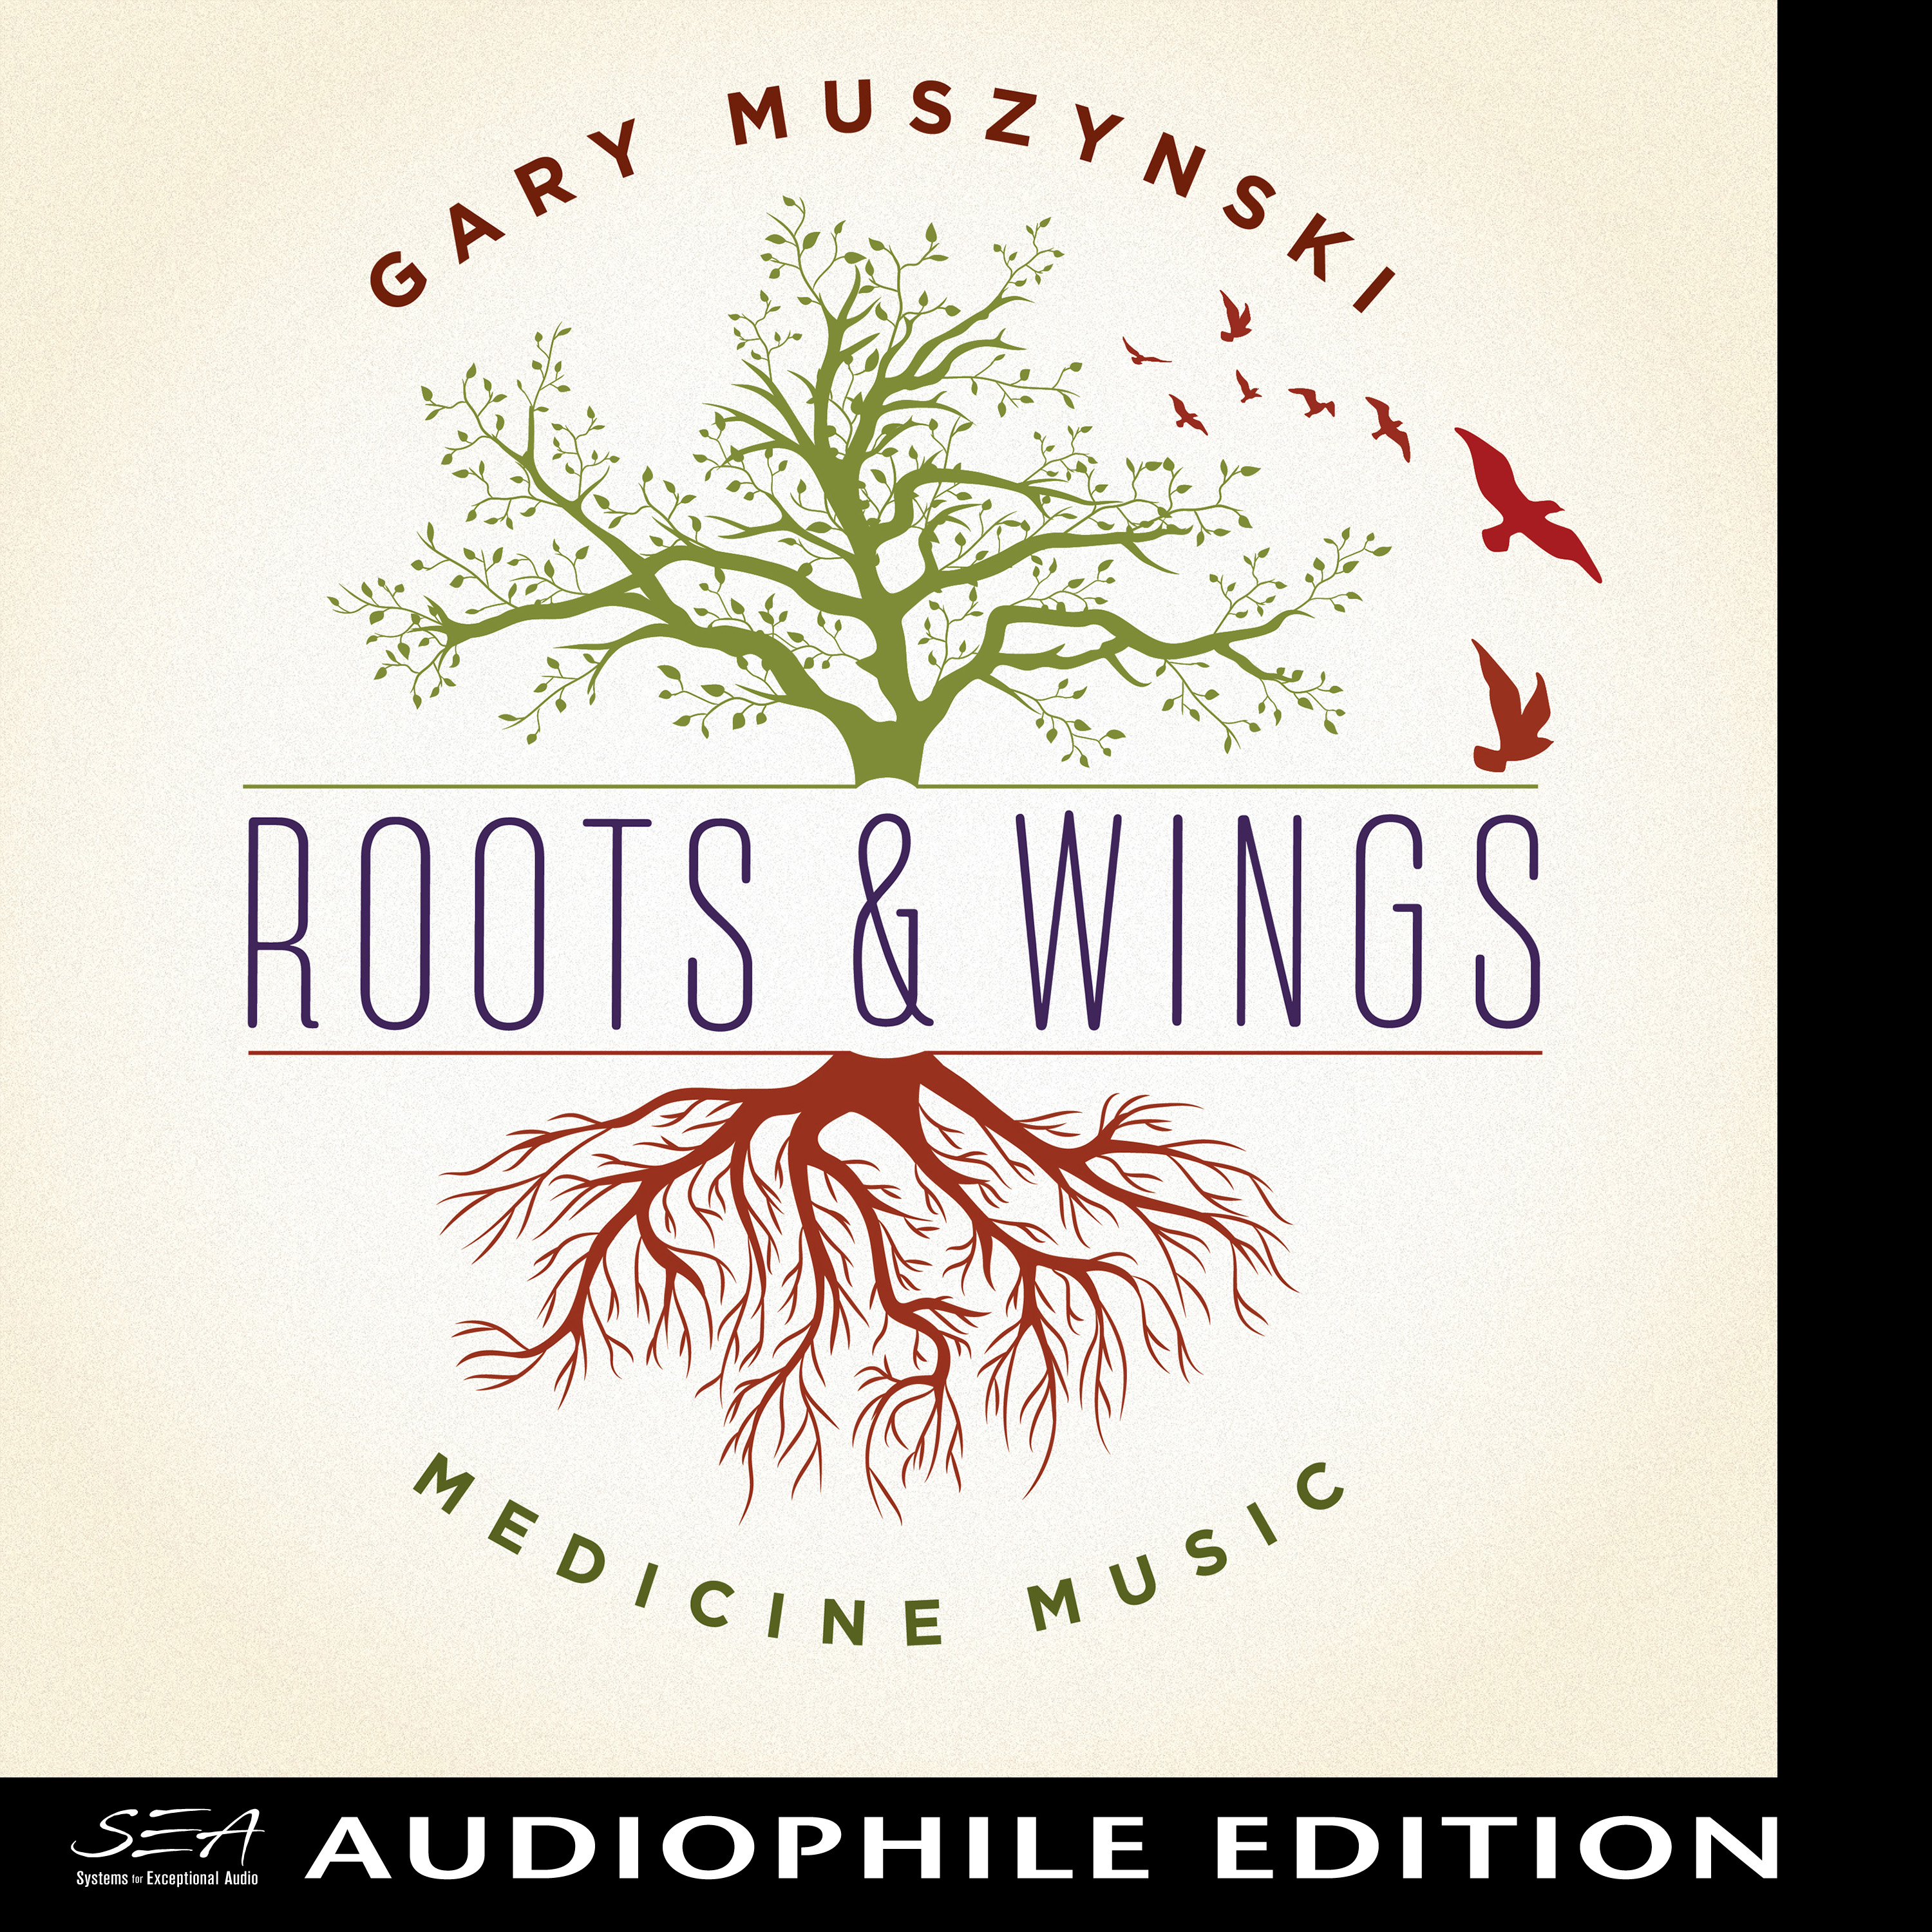 Gary Muszynski - Roots & Wings - Cover